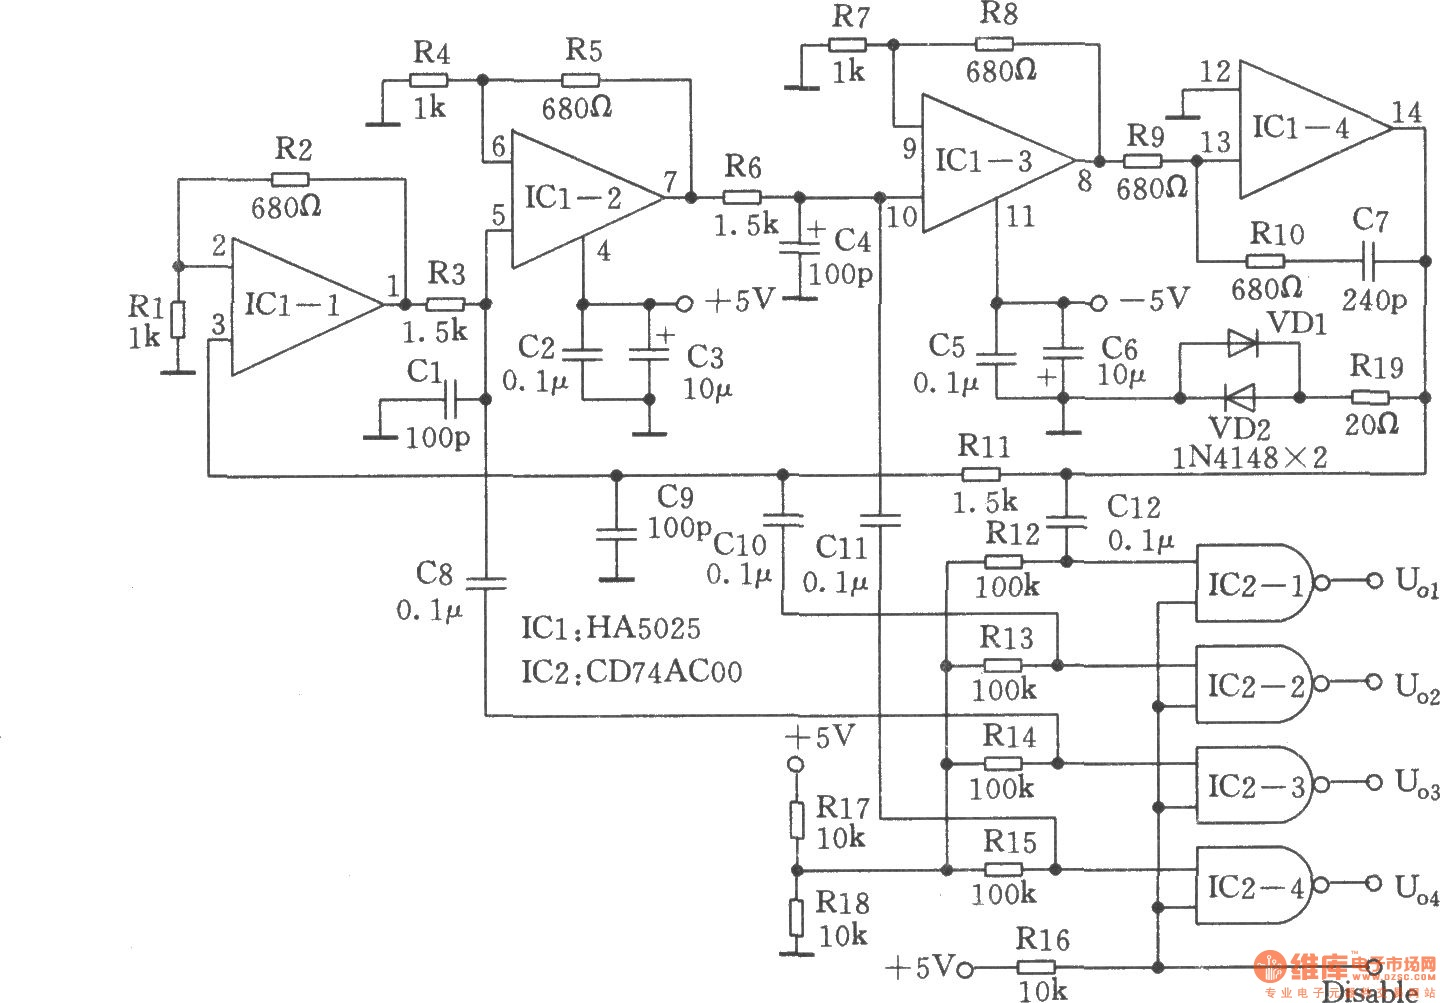 High-performance quadrature sine wave oscillator - schematic